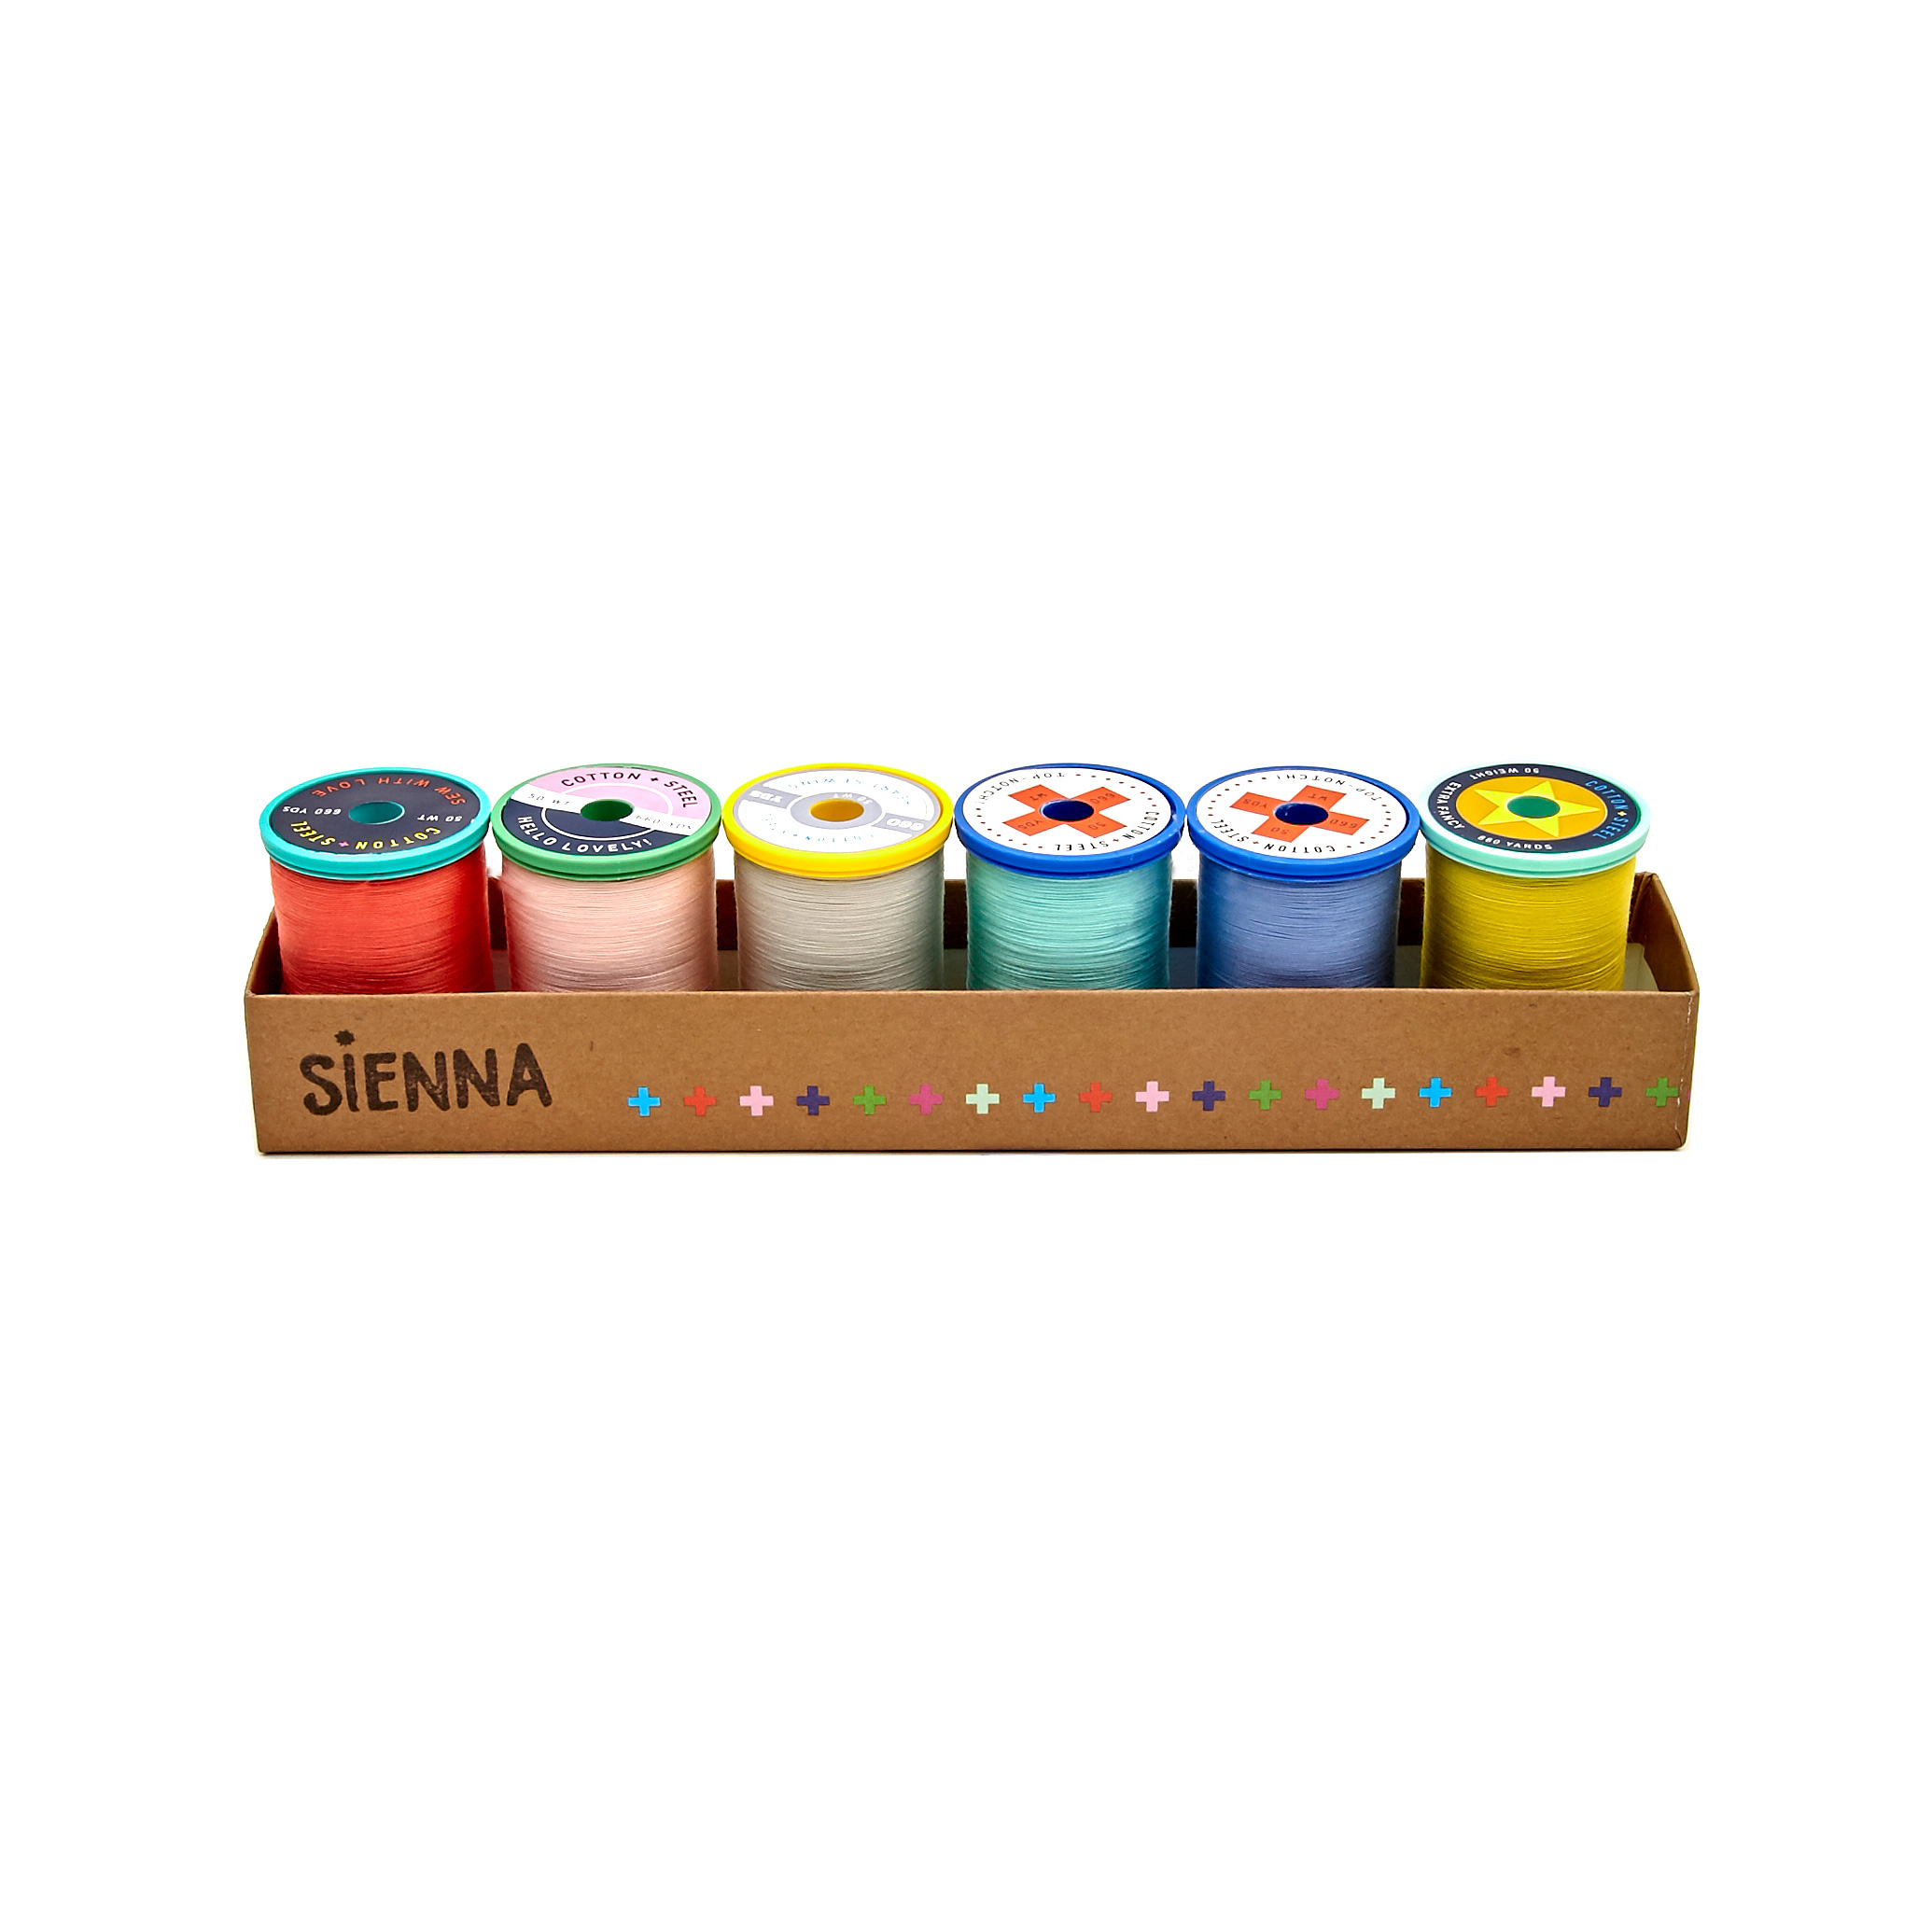 Image of Cotton + Steel 50wt. Cotton Thread Set by Sulky Sienna Collection